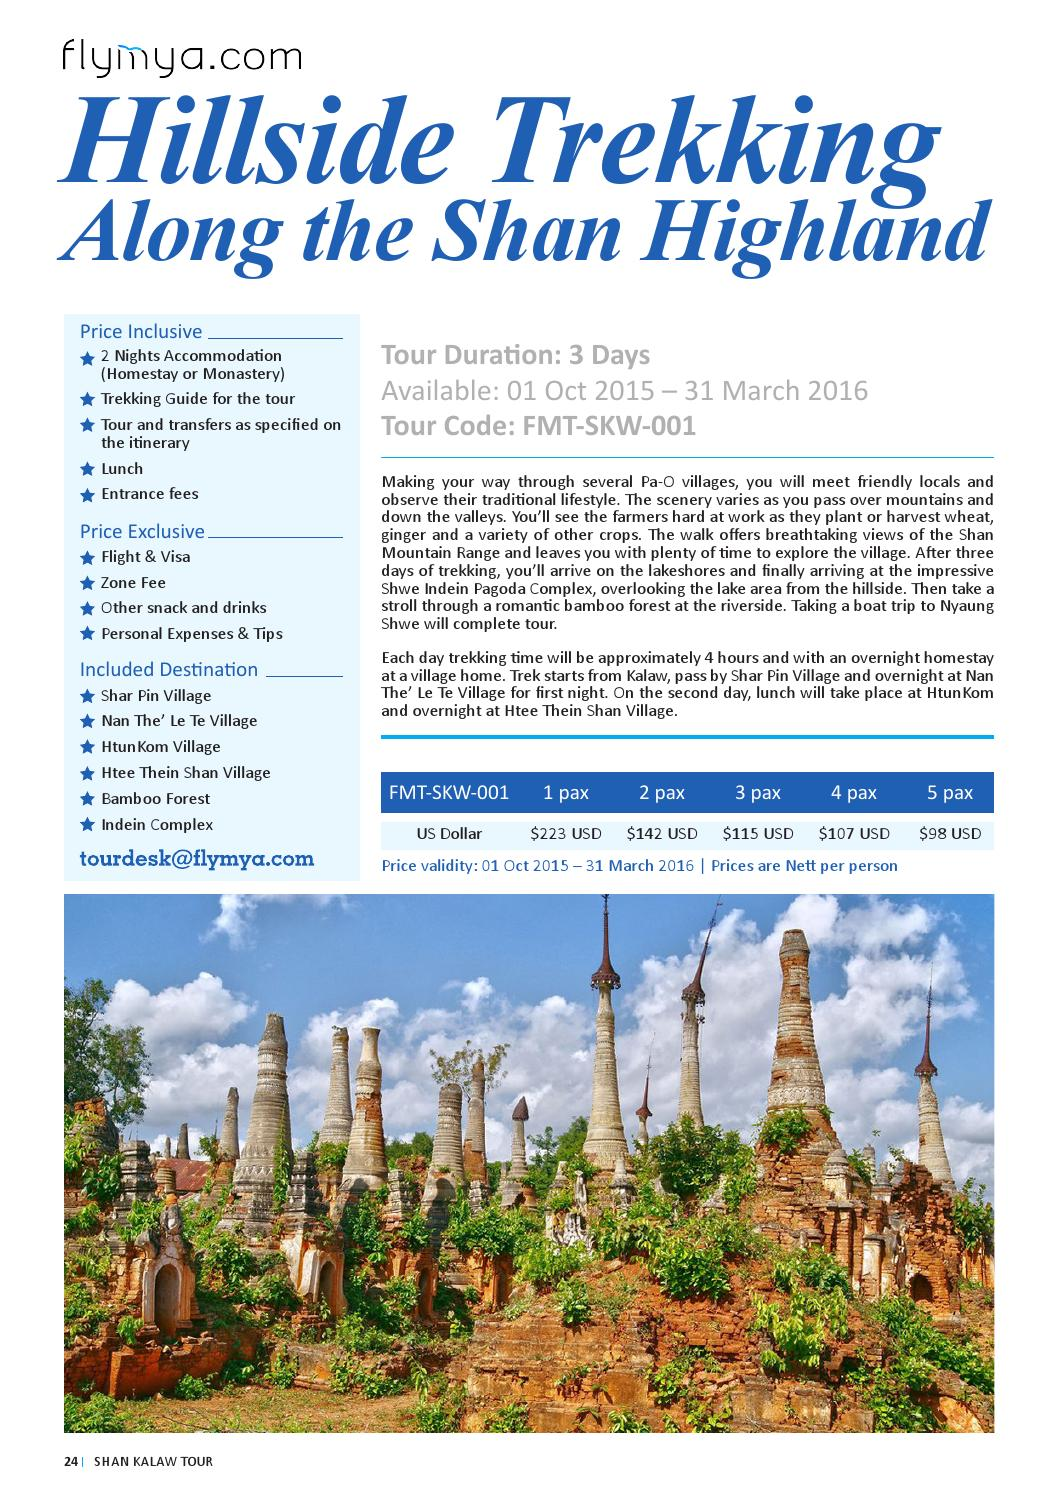 Kalaw Tour Packages by flymya com by flymya - issuu